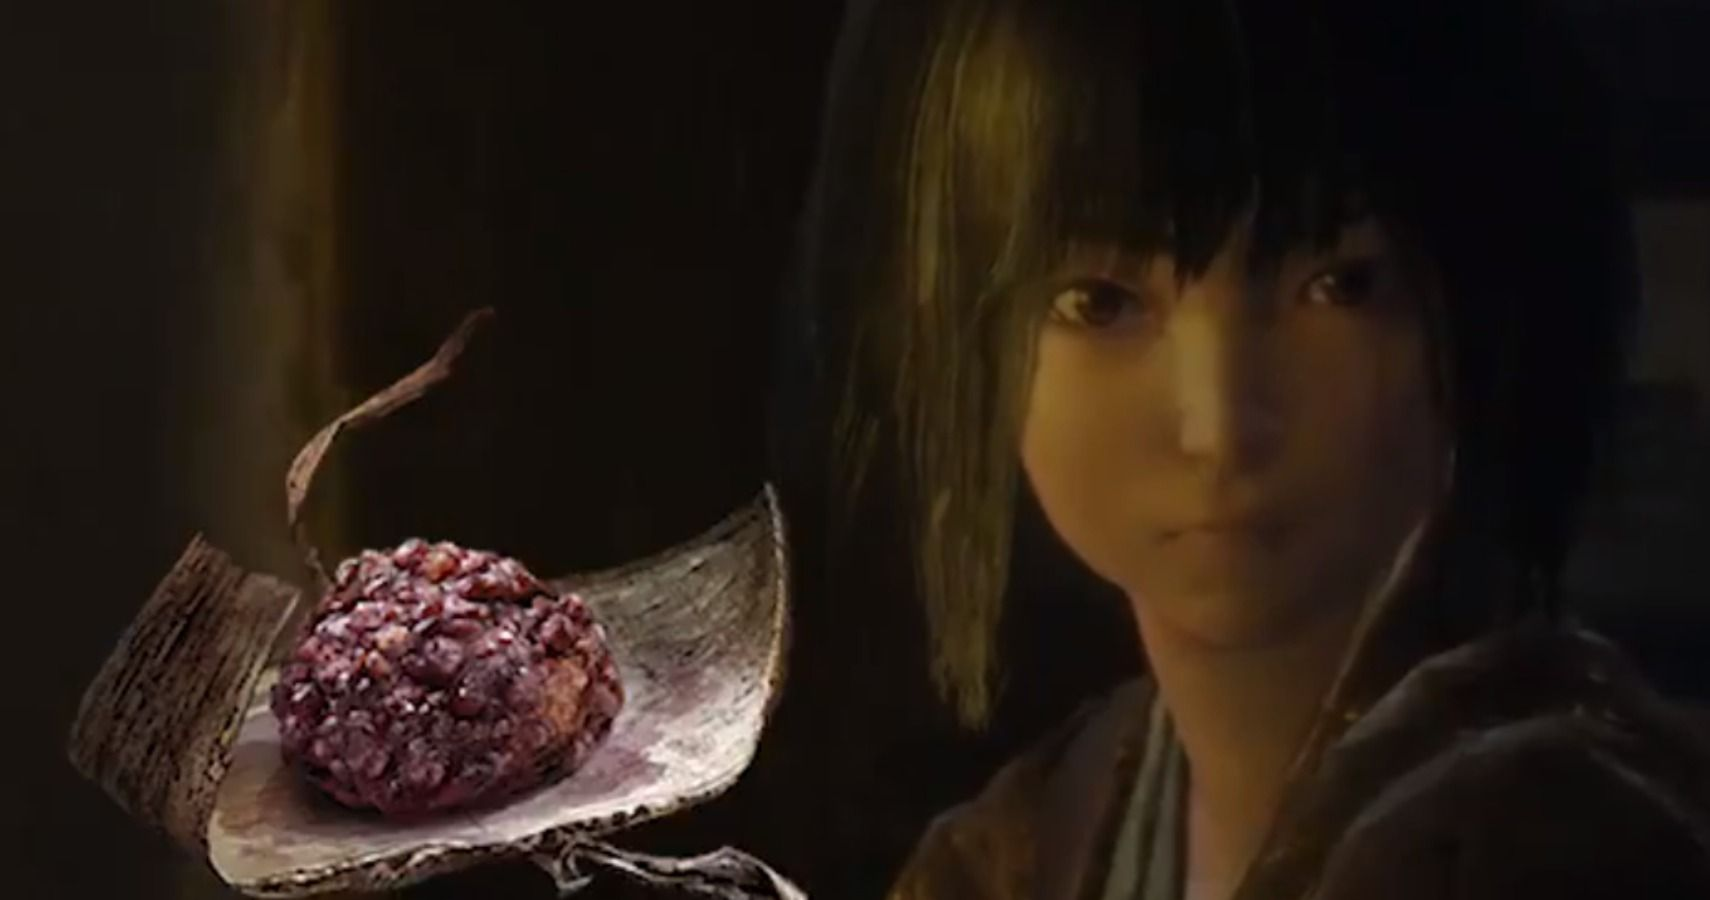 Like Sekiro? Check Out Kuro's Recipe For Sweet, Sticky Rice Balls